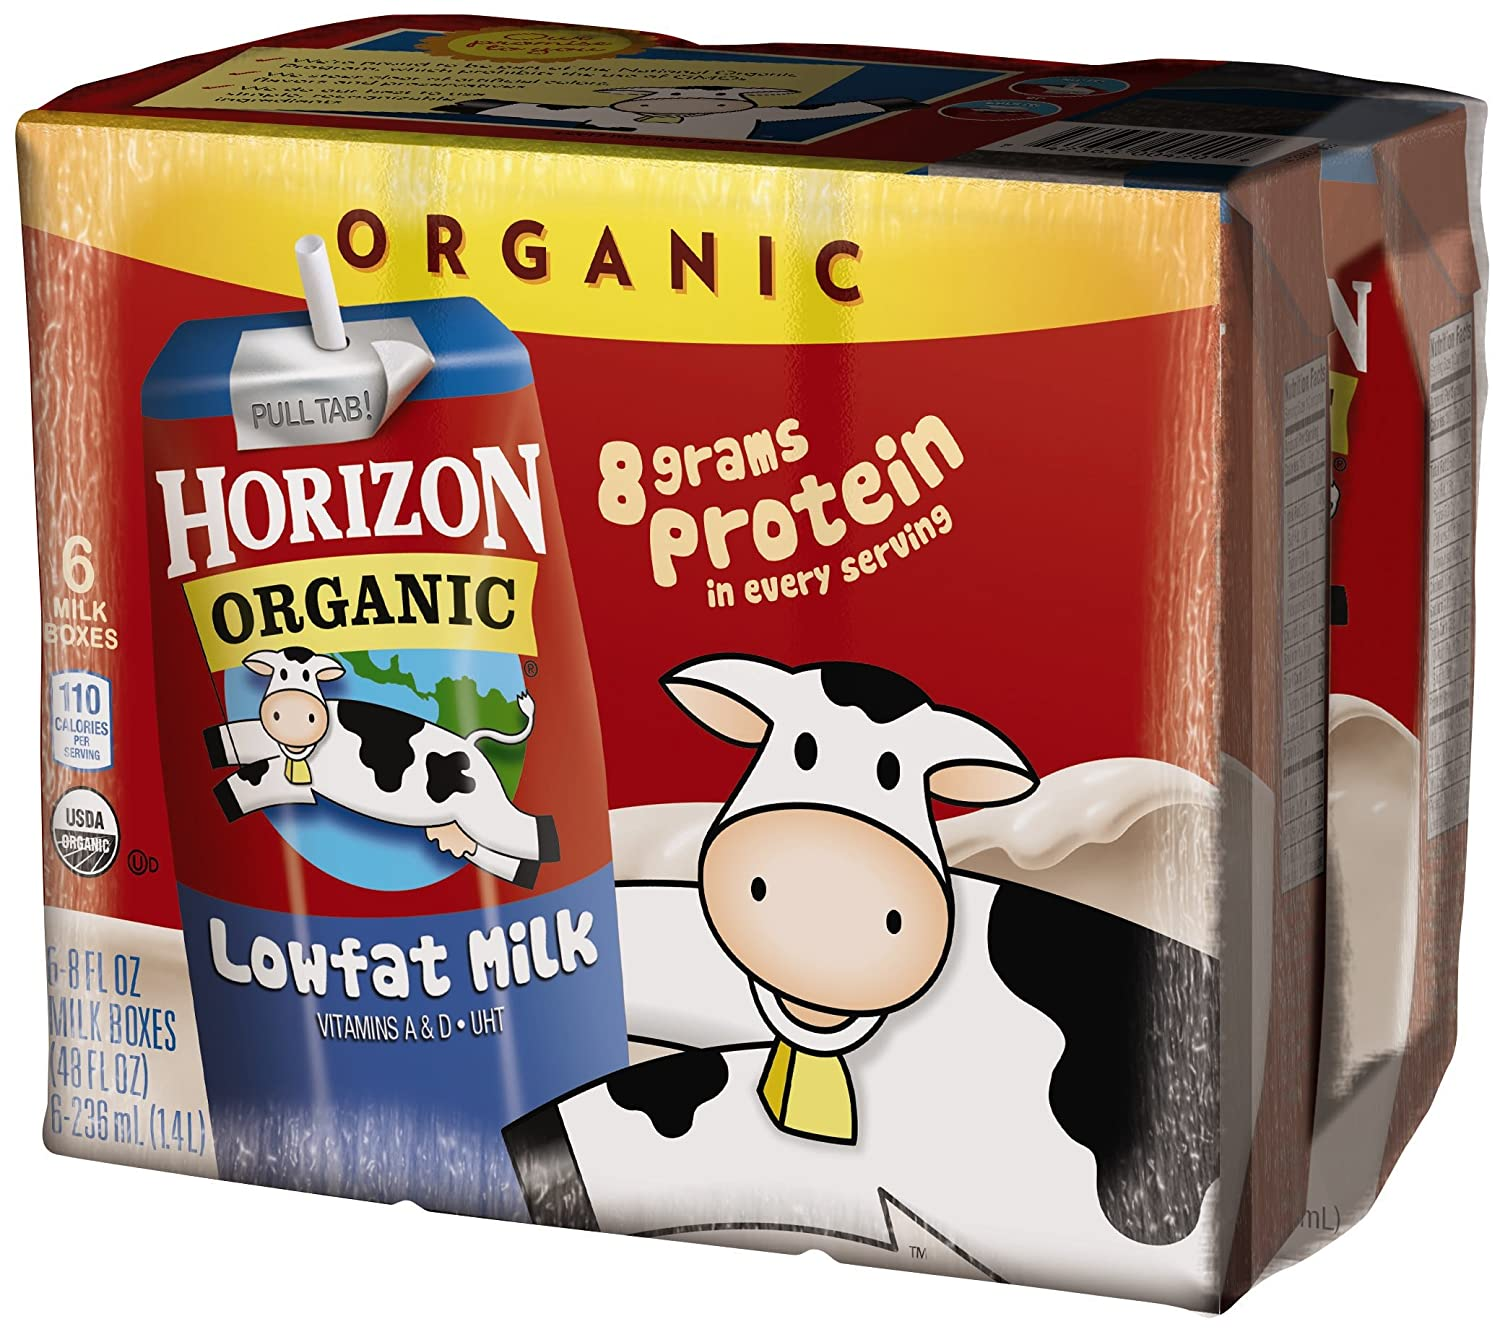 Horizon Organic, Low Fat Organic Milk Box, Plain, 8 Ounce (Pack of 6)